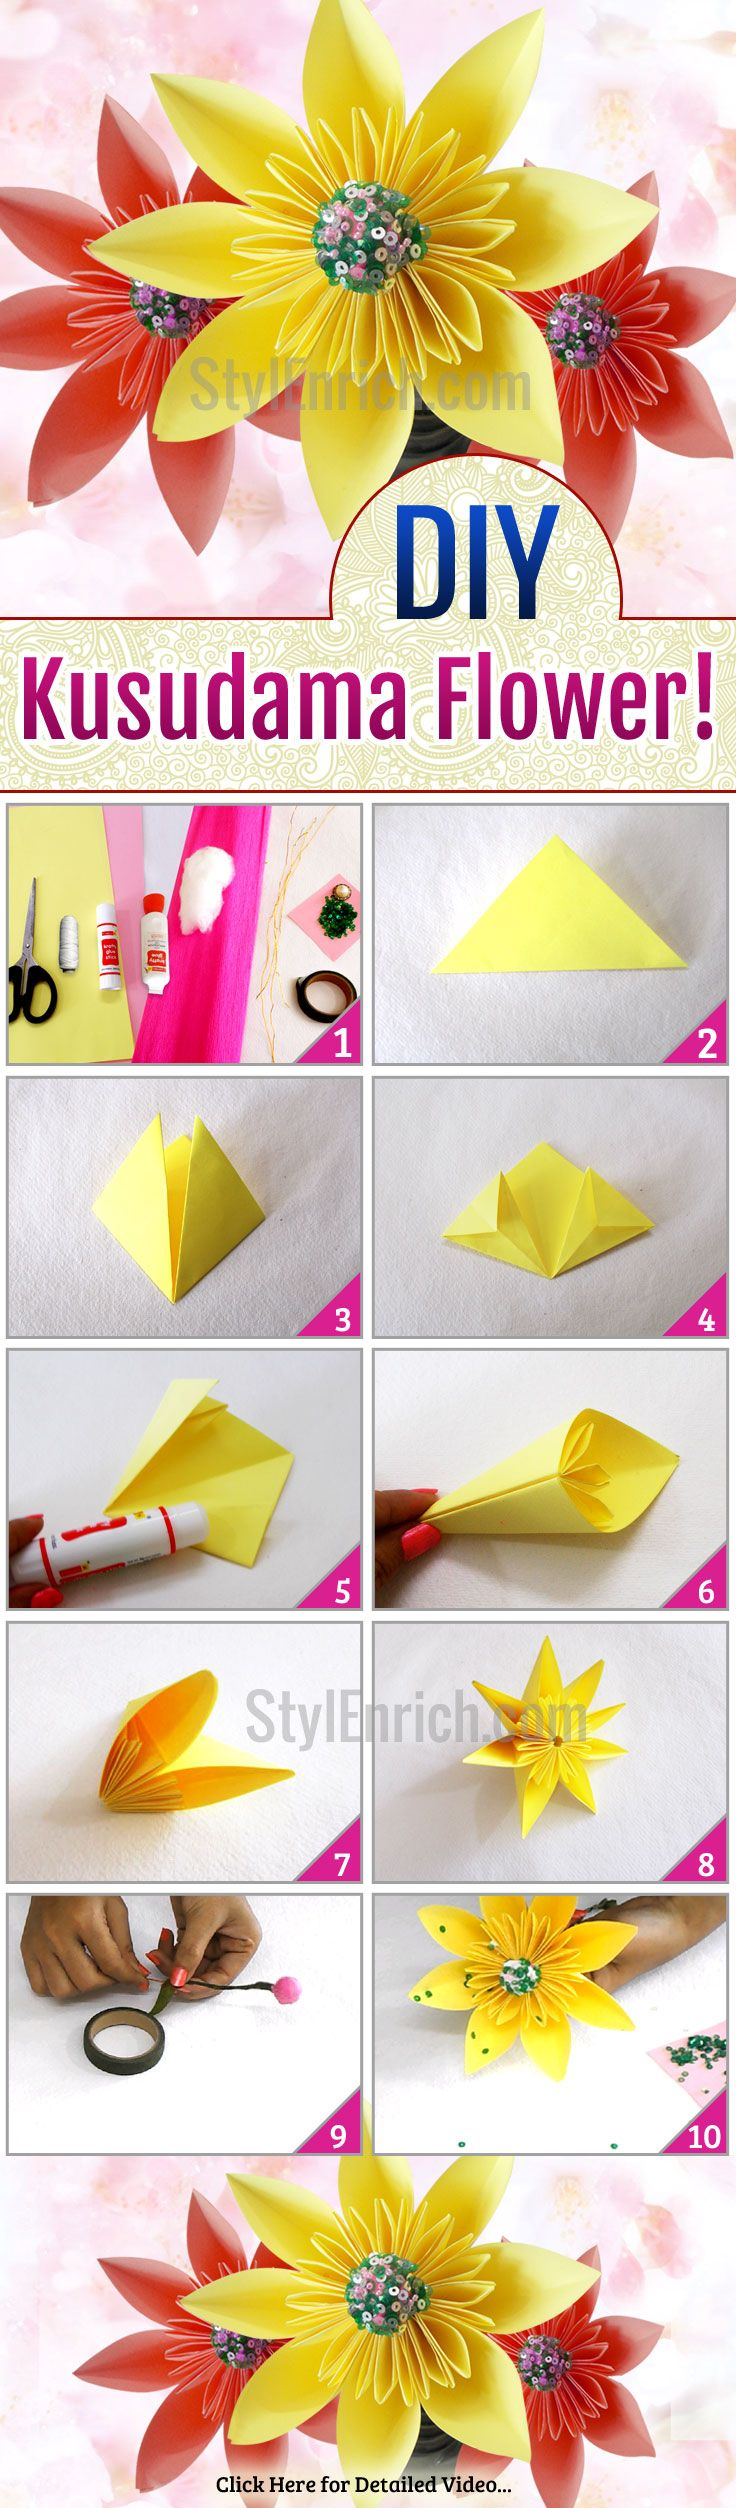 120 Best Origami Images On Pinterest Fabric Flowers Craft Flowers